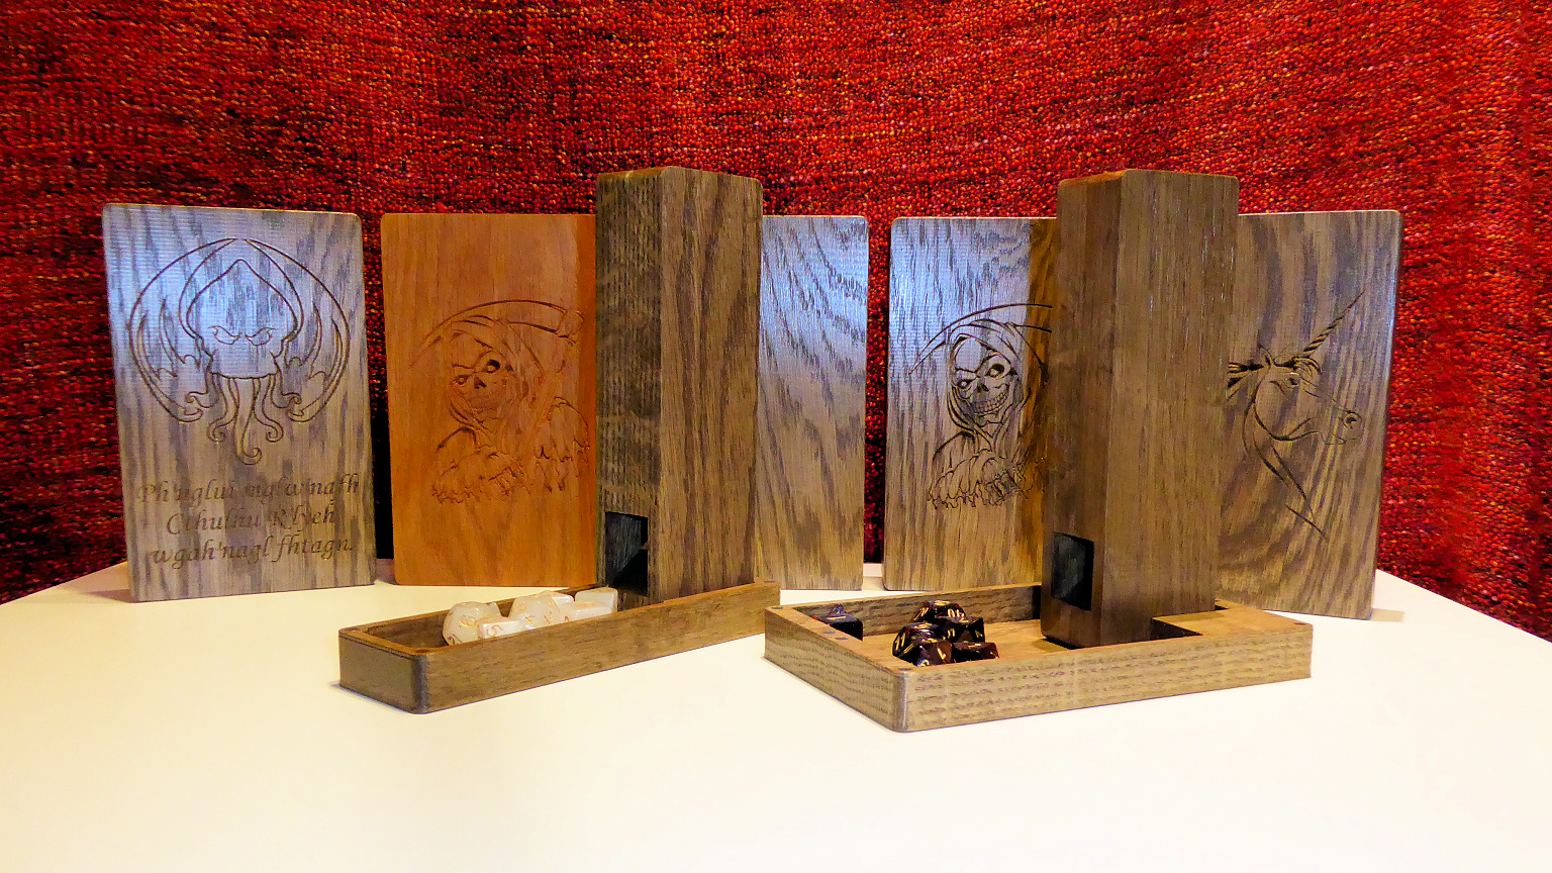 An *affordable* hardwood dice tower / tray / box solution for your gaming needs - D&D/Pathfinder/RPG or boardgame!